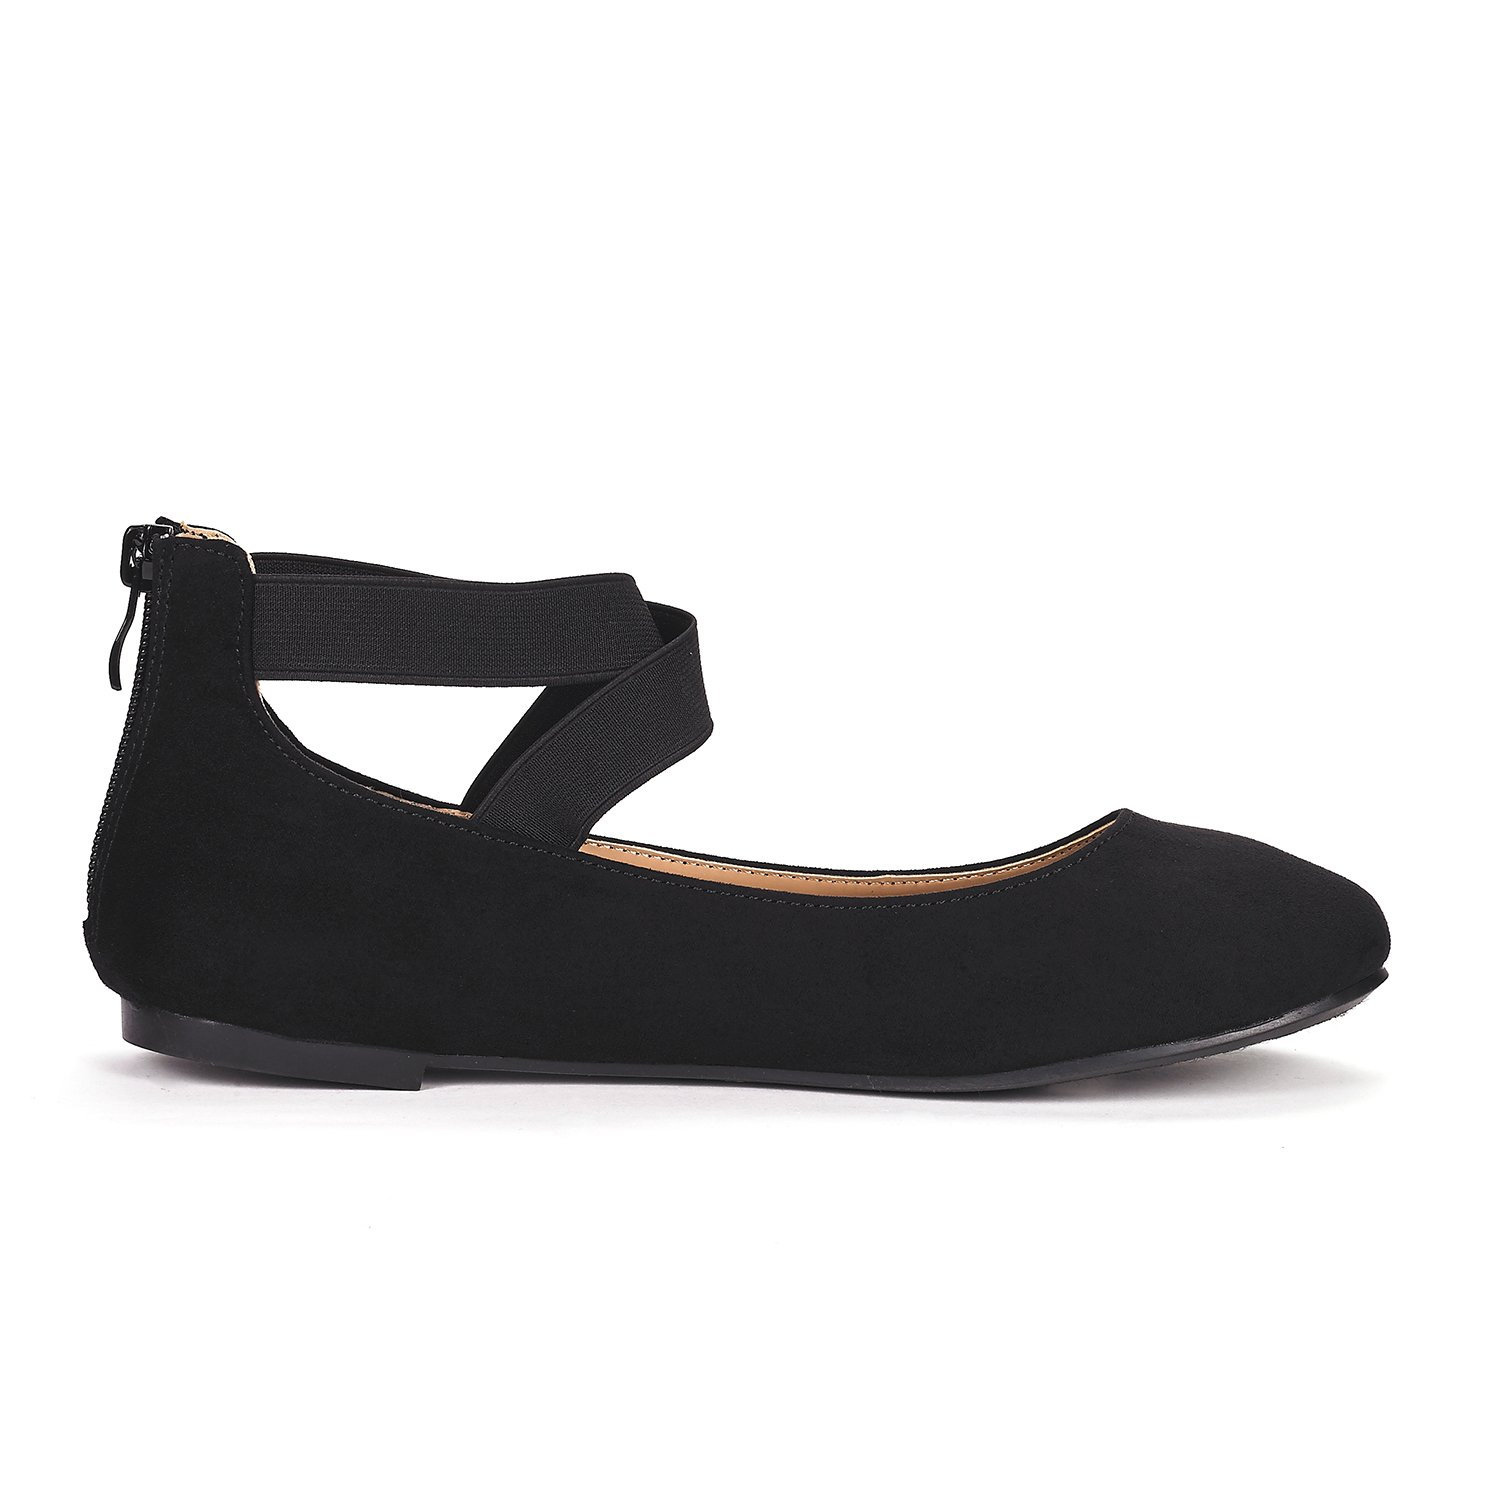 DREAM PAIRS Women's Sole_Stretchy Black Fashion Elastic Ankle Straps Flats Shoes Size 9 M US by DREAM PAIRS (Image #3)